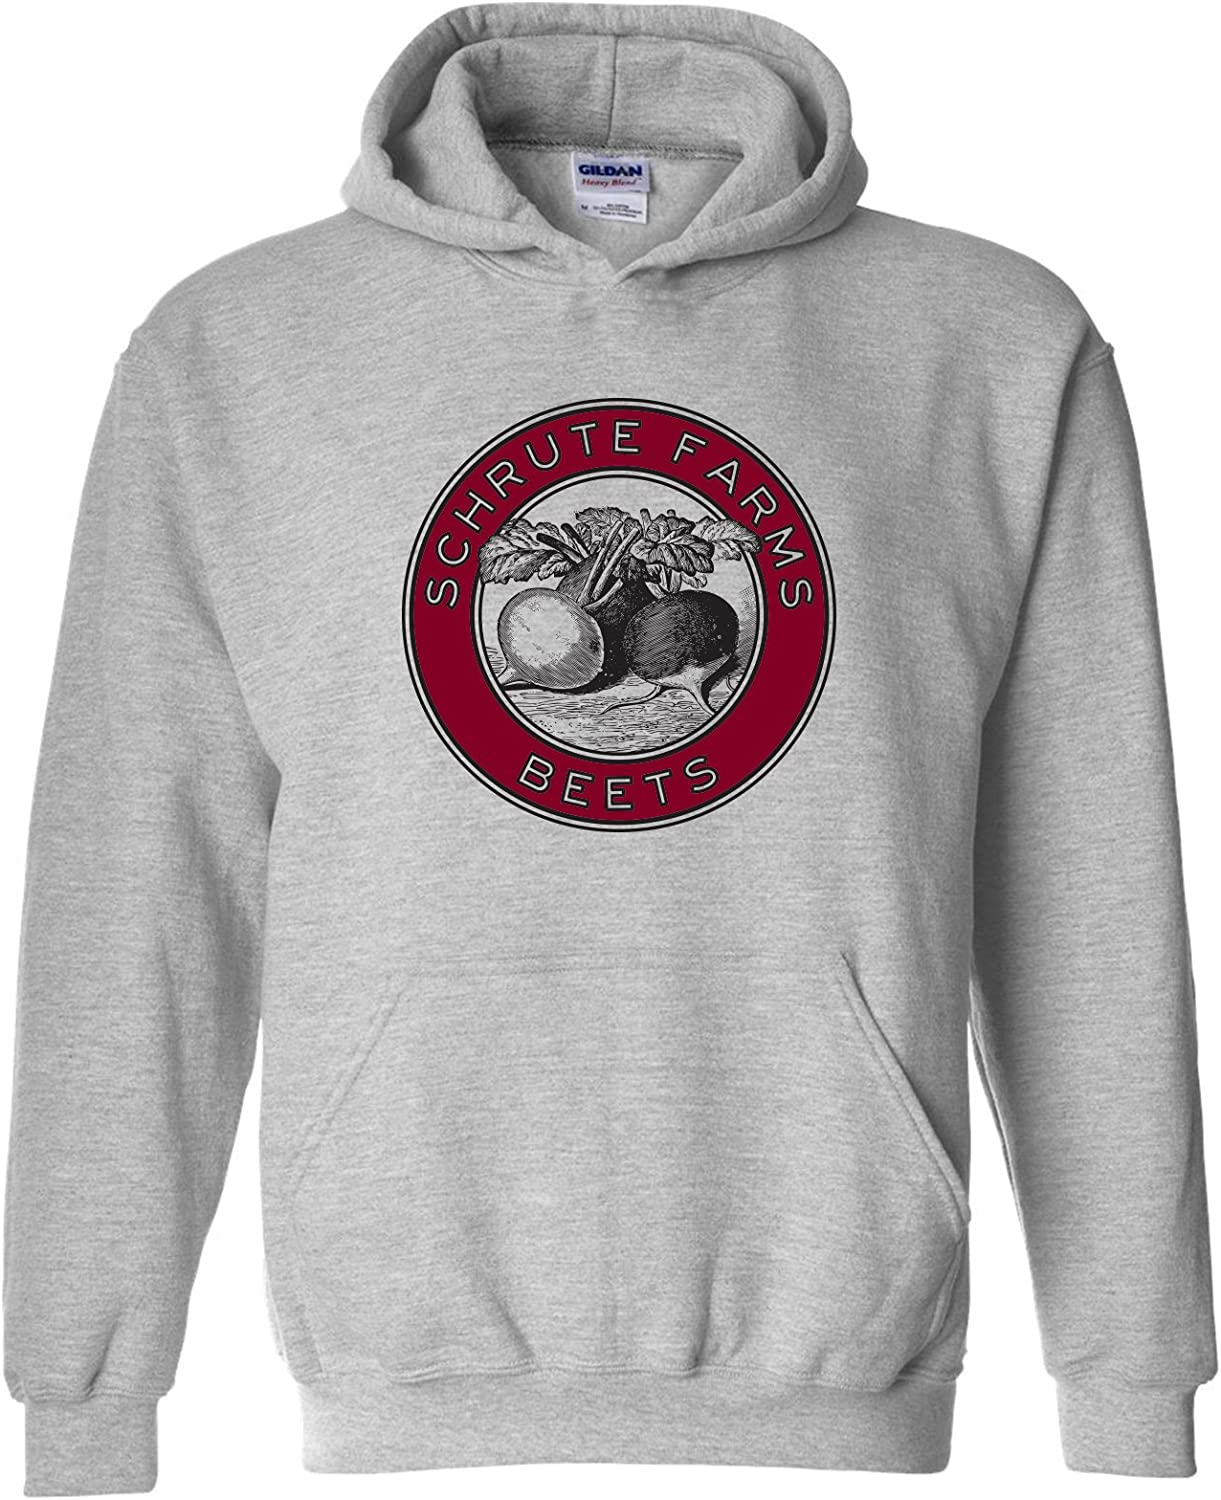 UGP Campus Apparel Schrute Farms Beets - Funny TV Show Hoodie